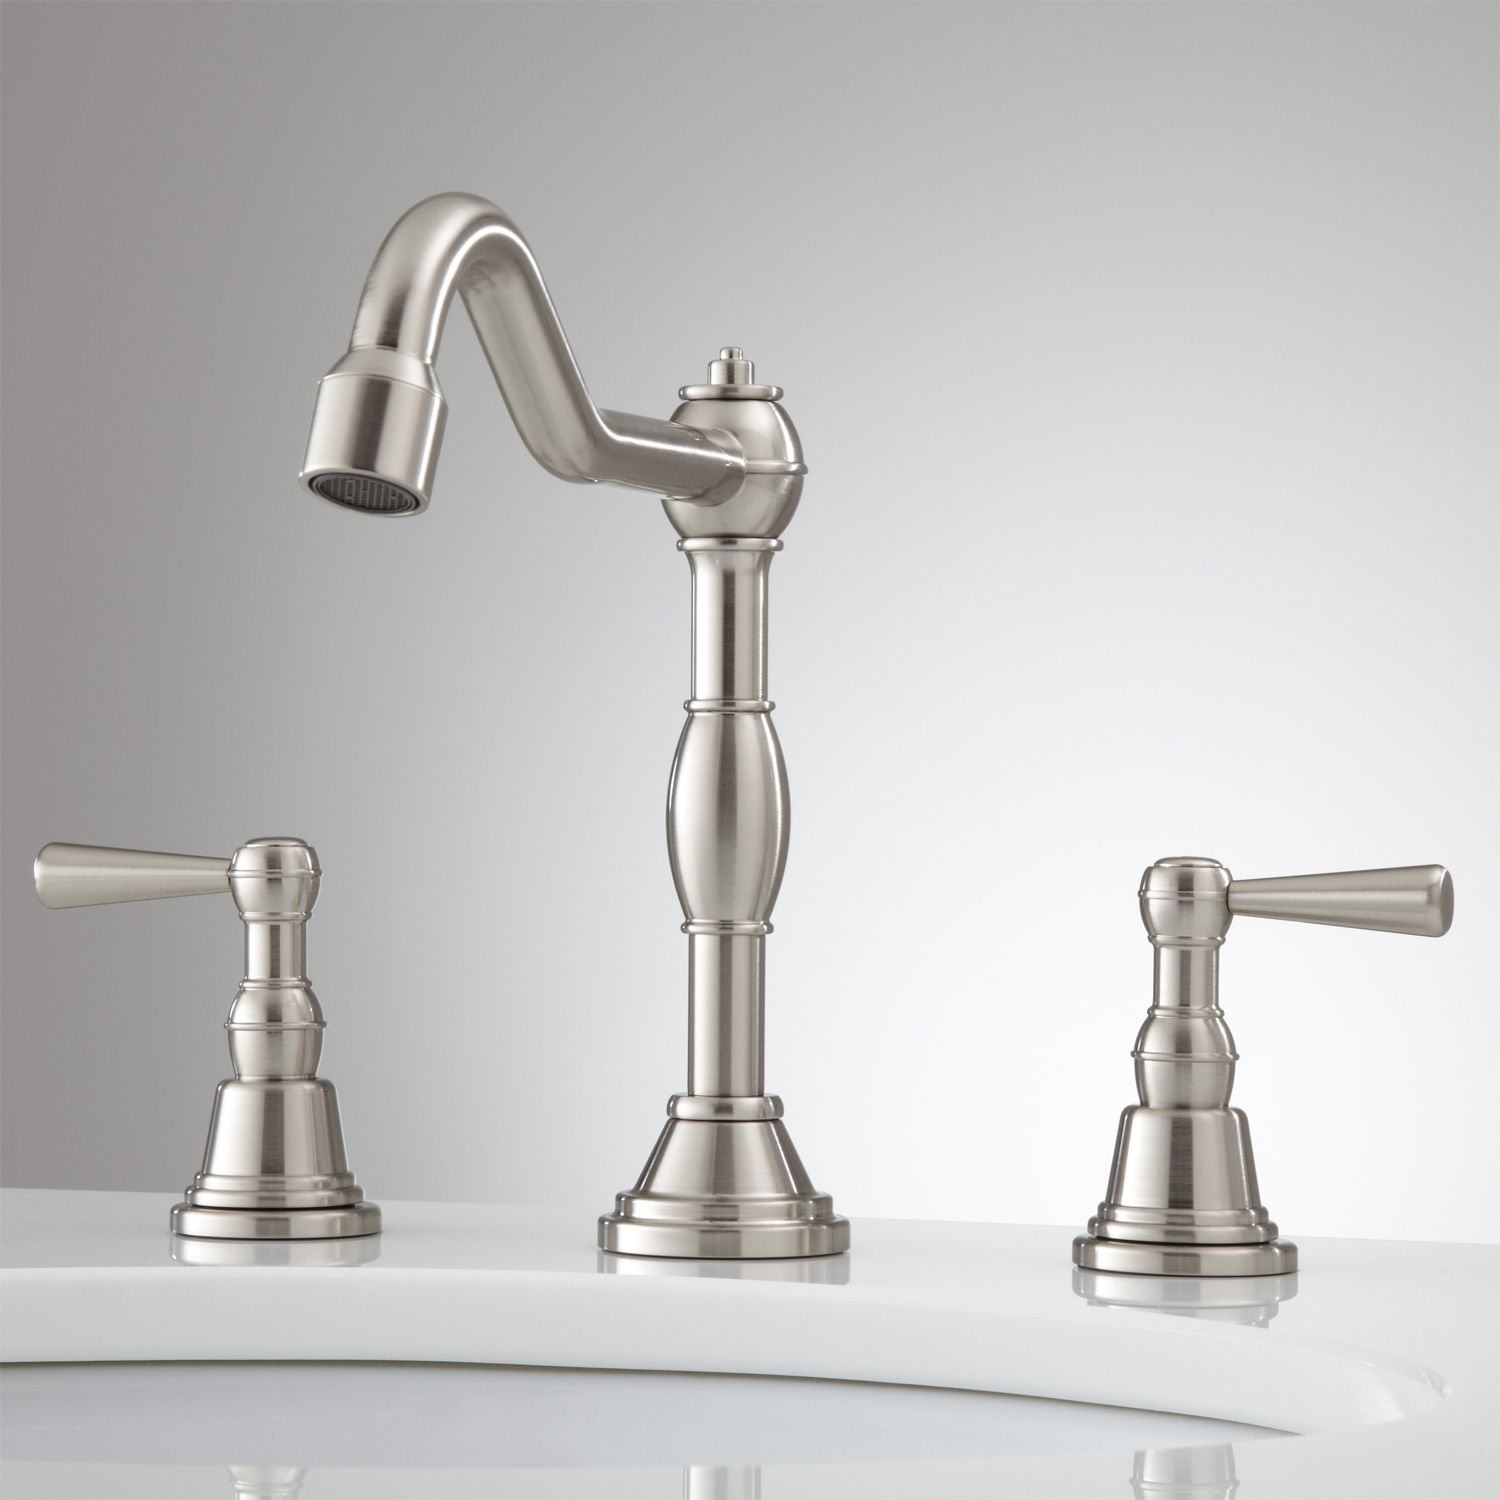 Carice Widespread Bathroom Faucet - Brushed Nickel | Kitchen/bath ...